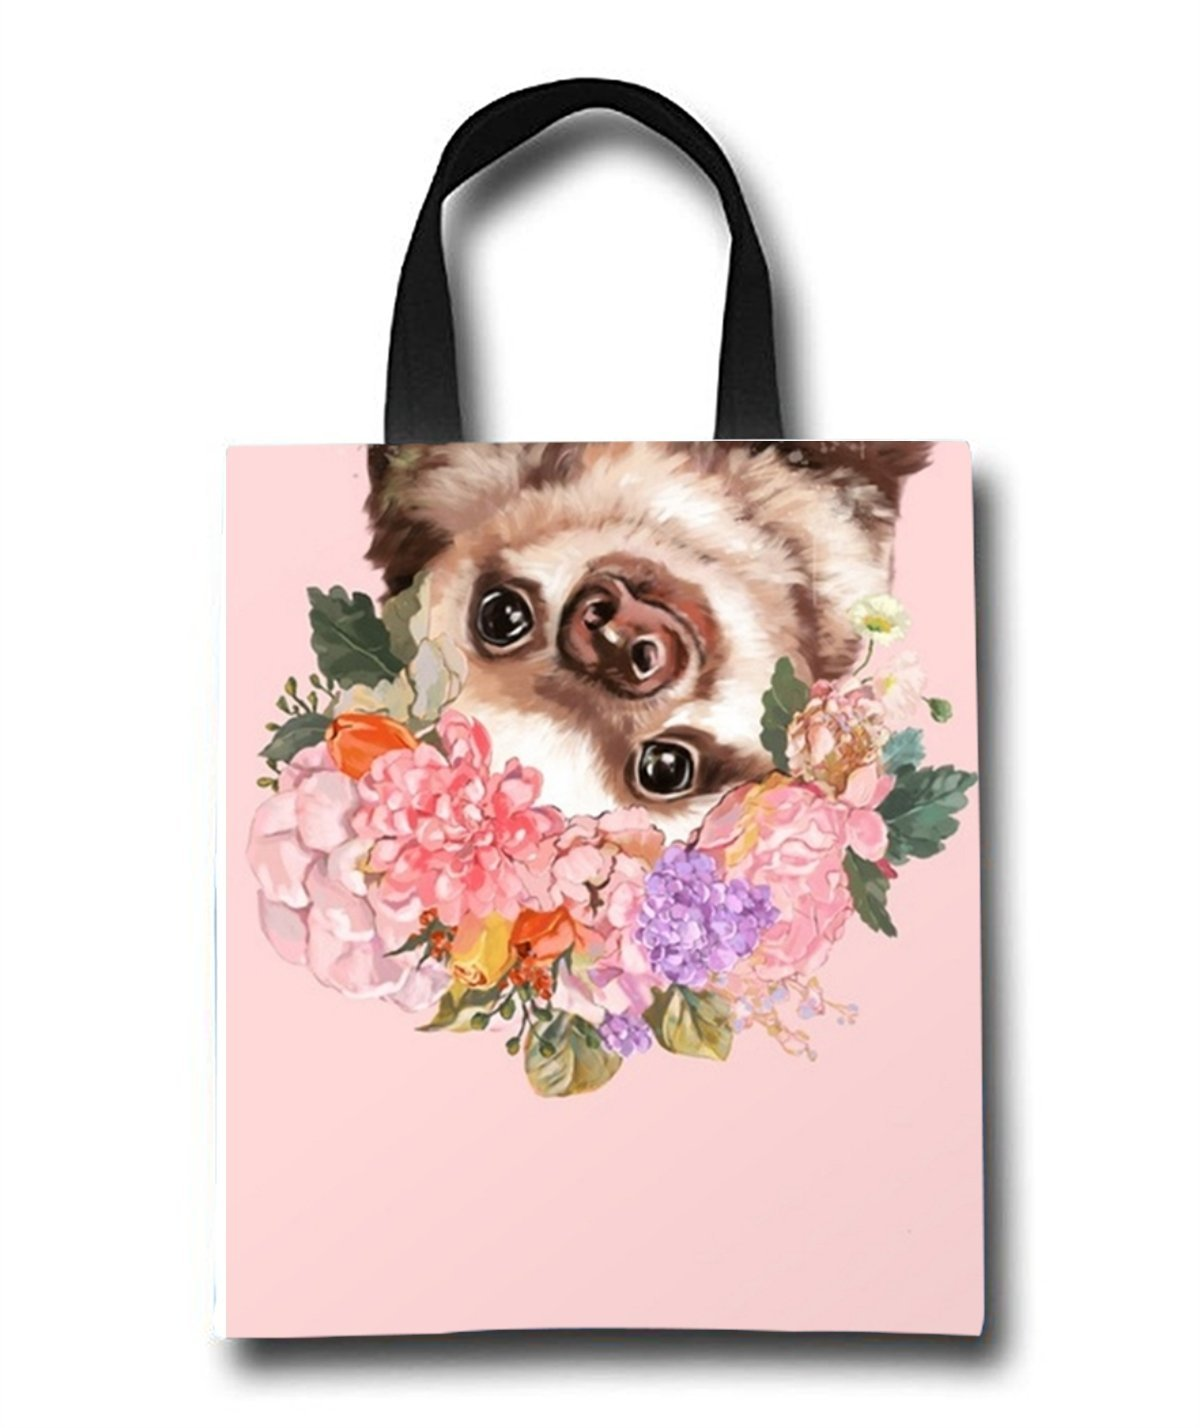 Baby Sloth With Flowers Beach Tote Bag - Toy Tote Bag - Large Lightweight Market, Grocery & Picnic